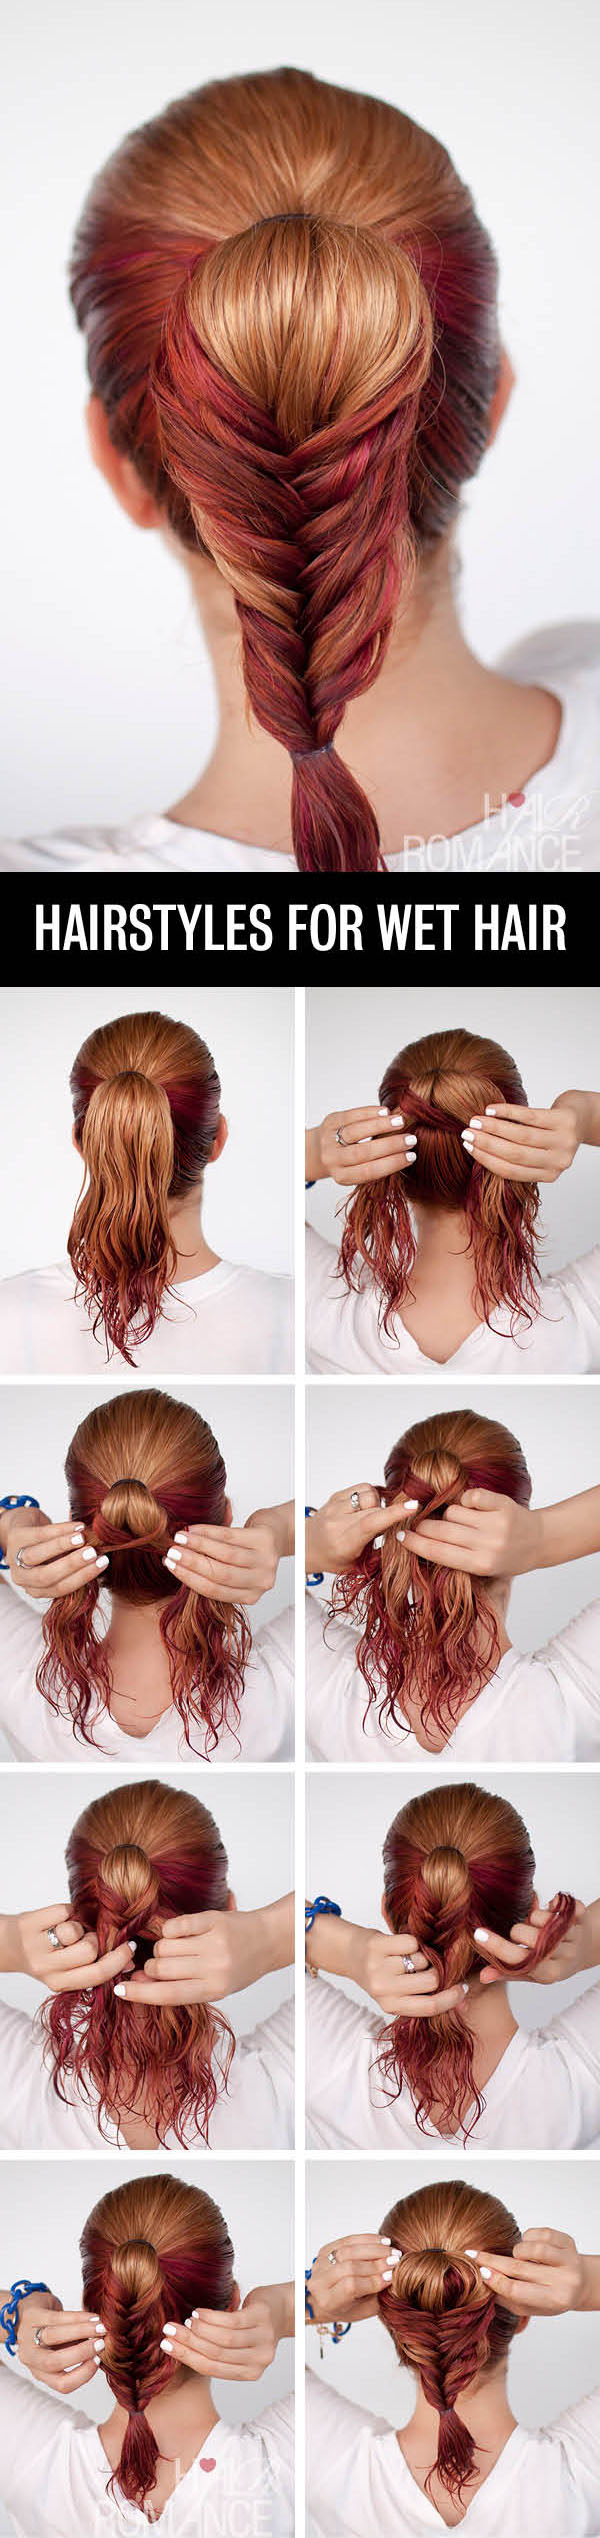 Hair Romance - Hairstyle tutorials for wet hair - the fishtail ponytail